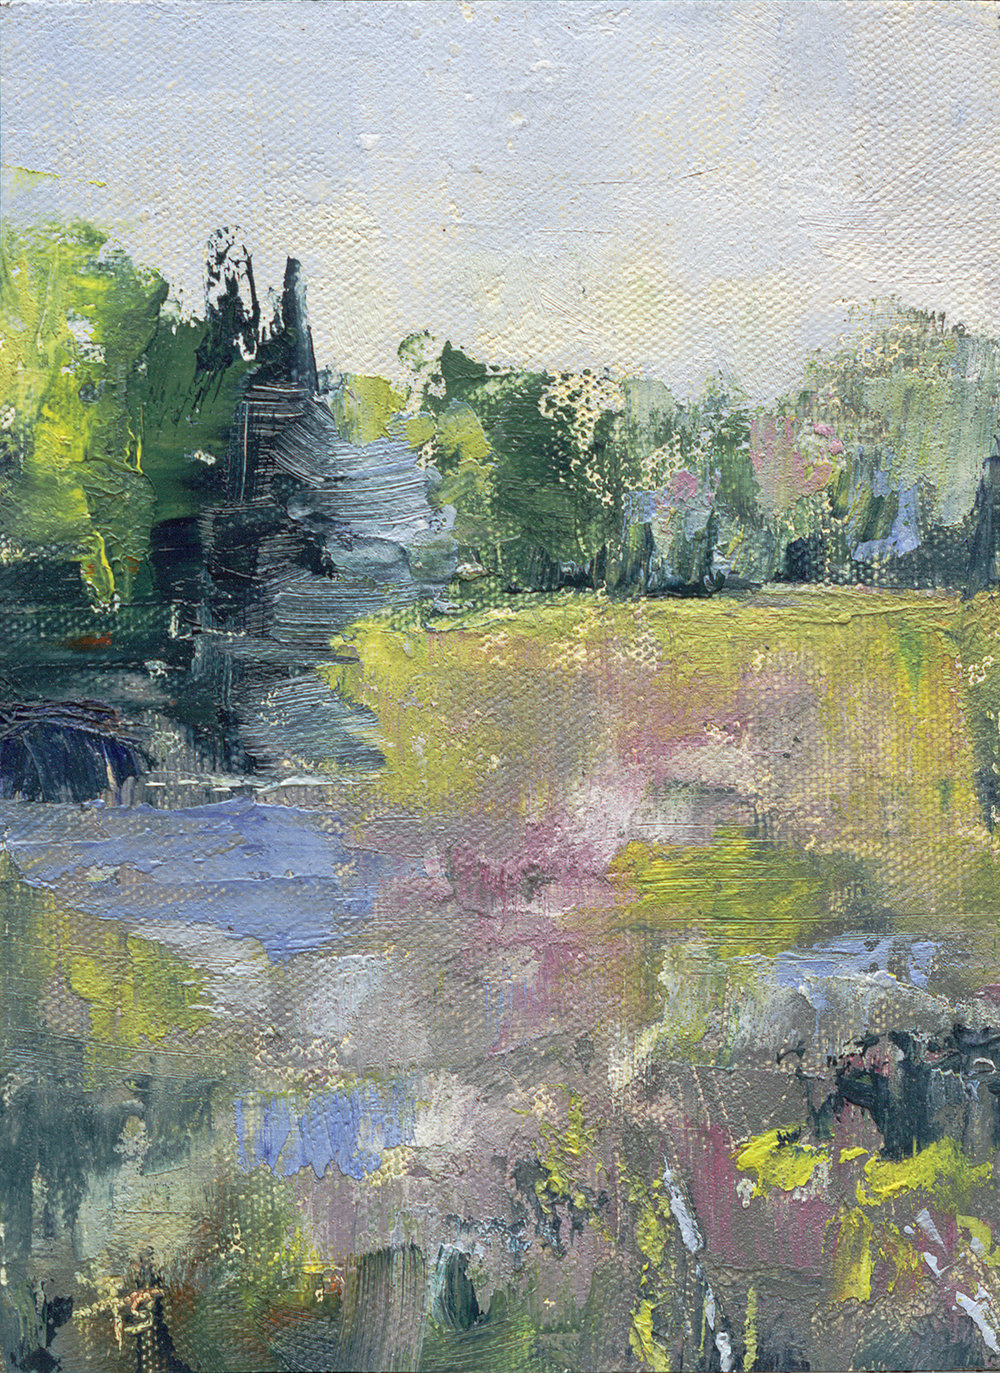 "Fuller Gardens #2 - North Hampton, NH, 5 X 7"" oil on canvas panel in silver finished floater frame"